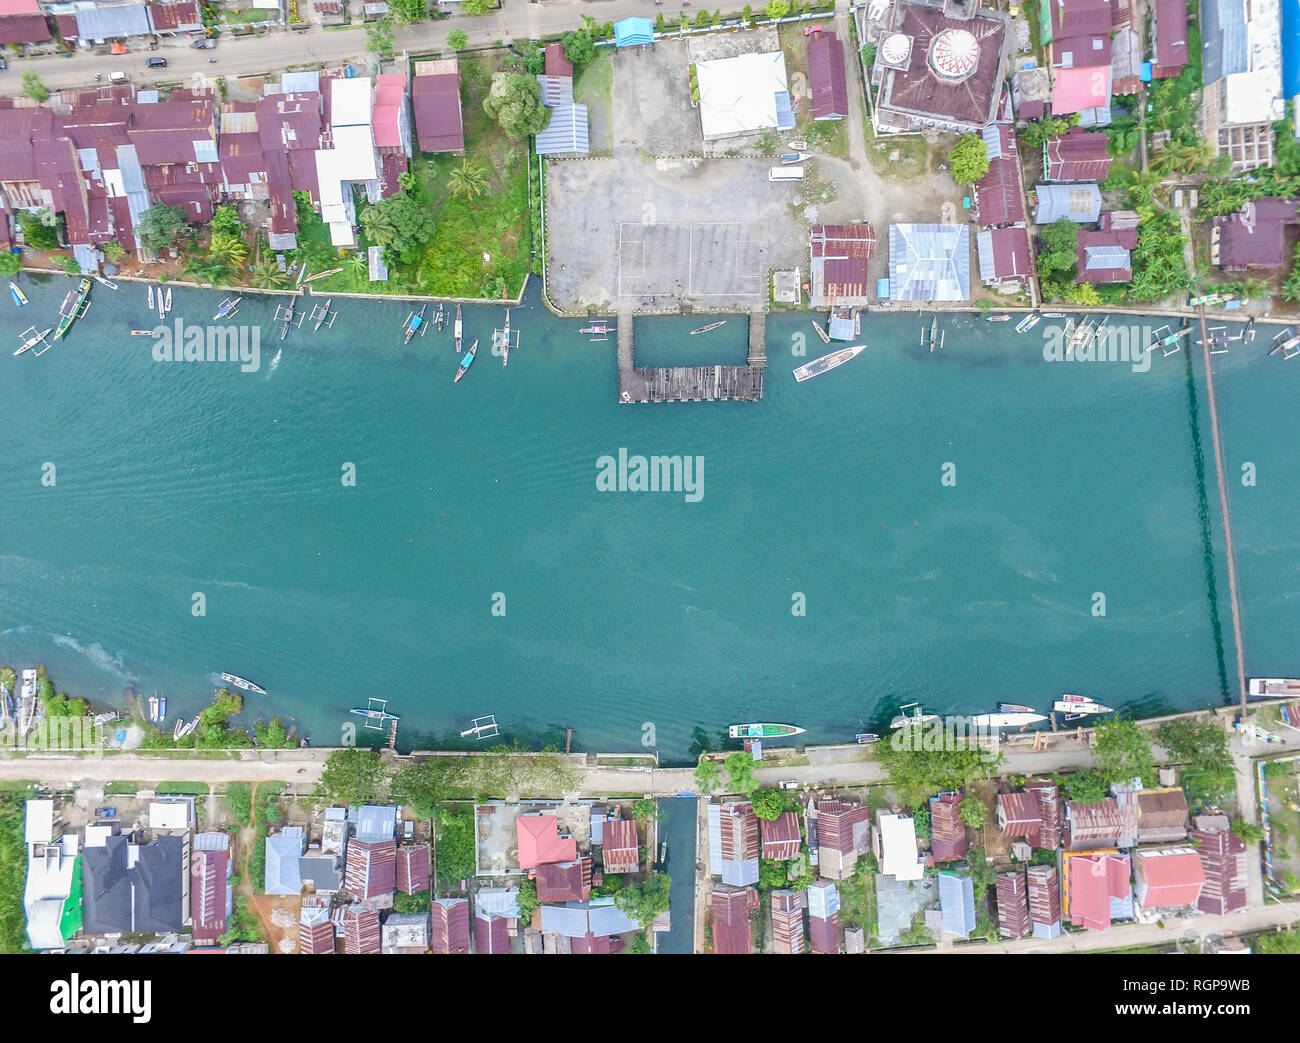 Traditional boat docking in the landscape of Malili River. Malili is asmall city in South Sulawesi which rely on fishery and agriculture. - Stock Image